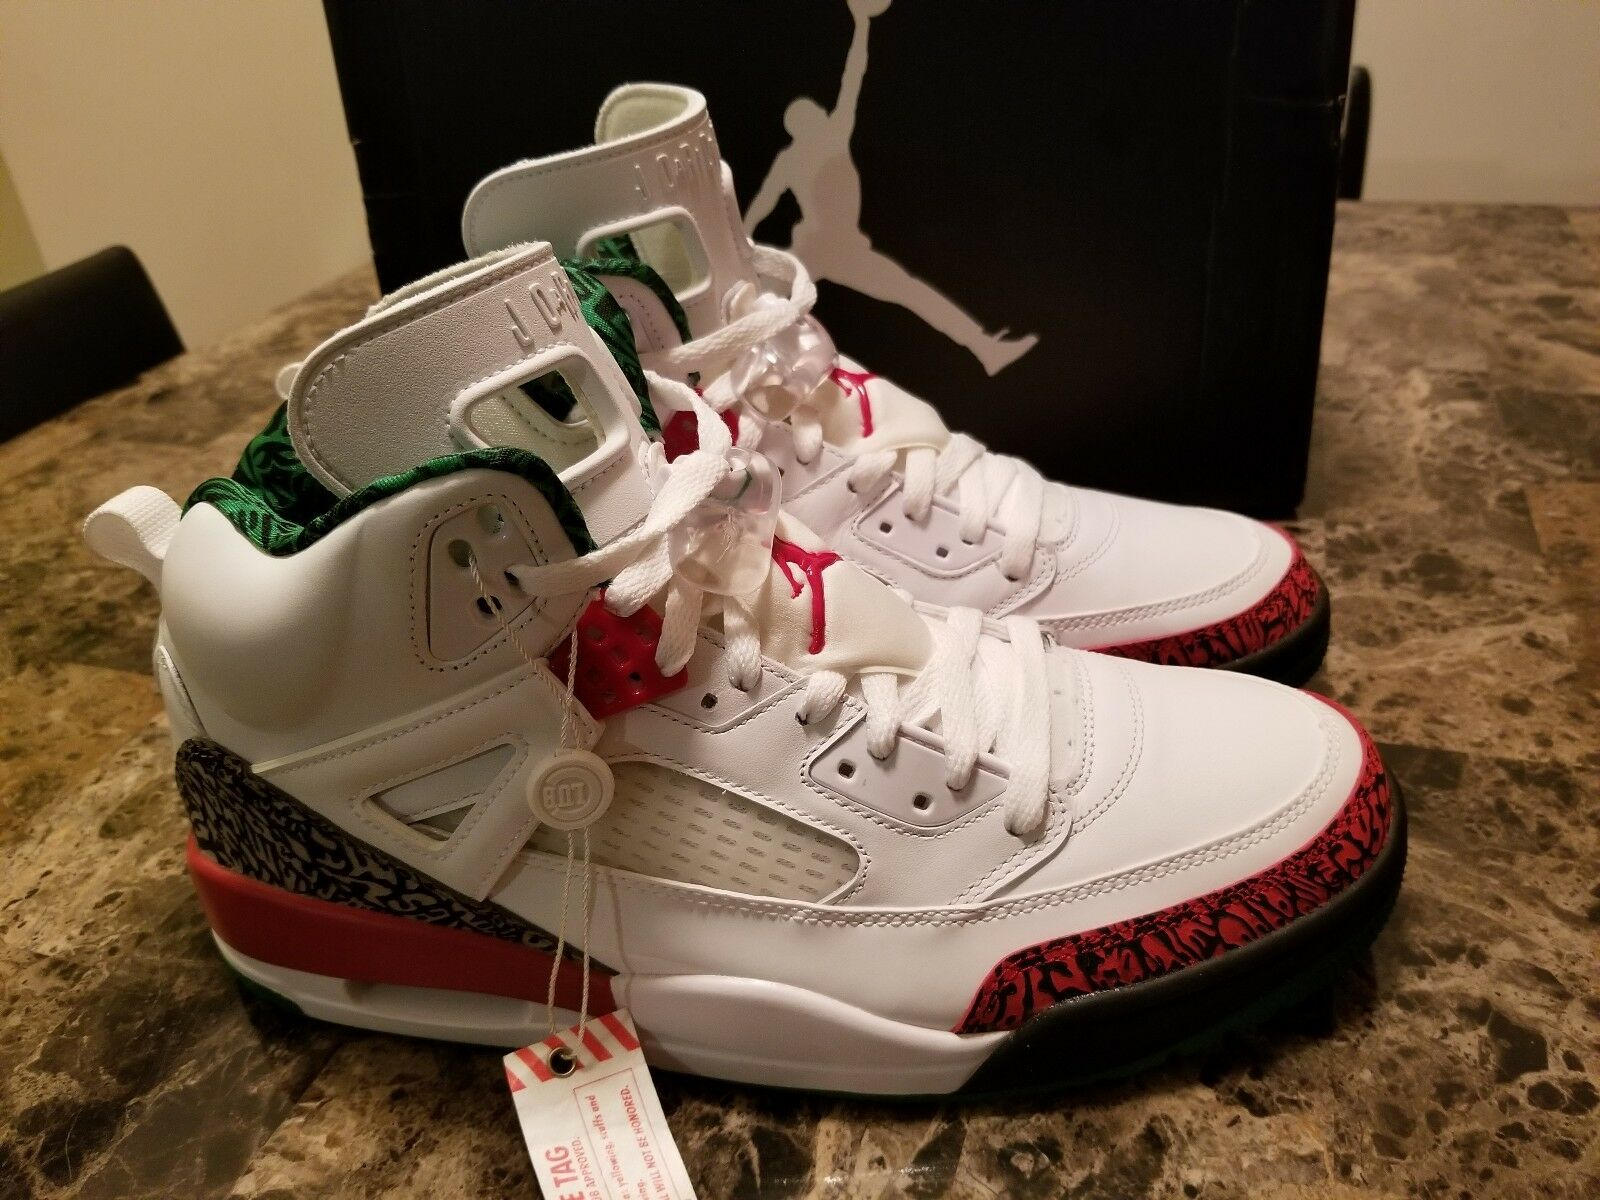 Nike Air Jordan spizike White vrsty Red cmnt gry and green Size 11